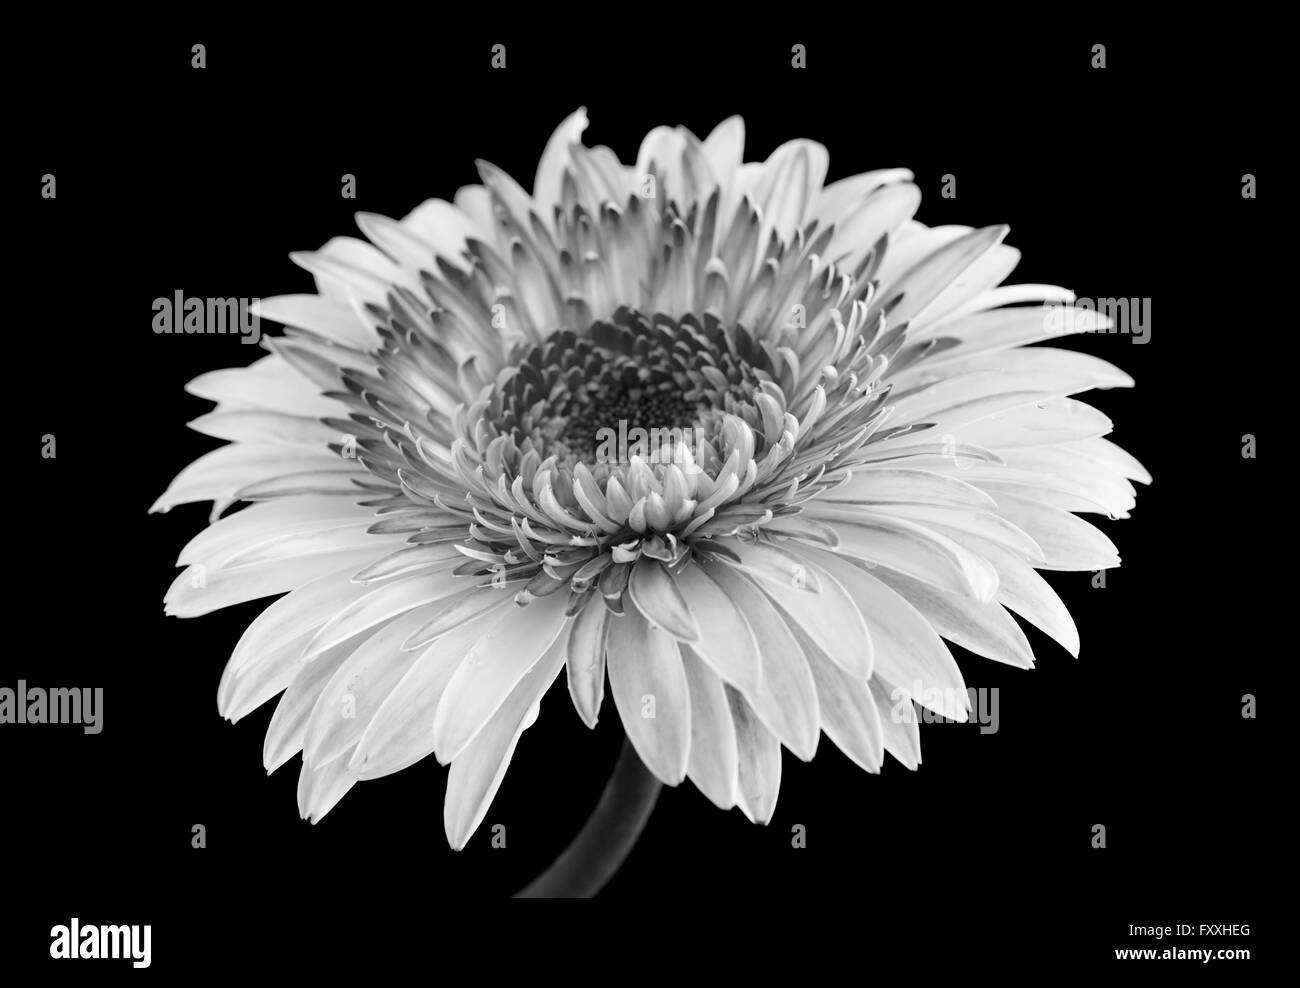 gerbera flower in black nd white isolated on black background - Stock Image